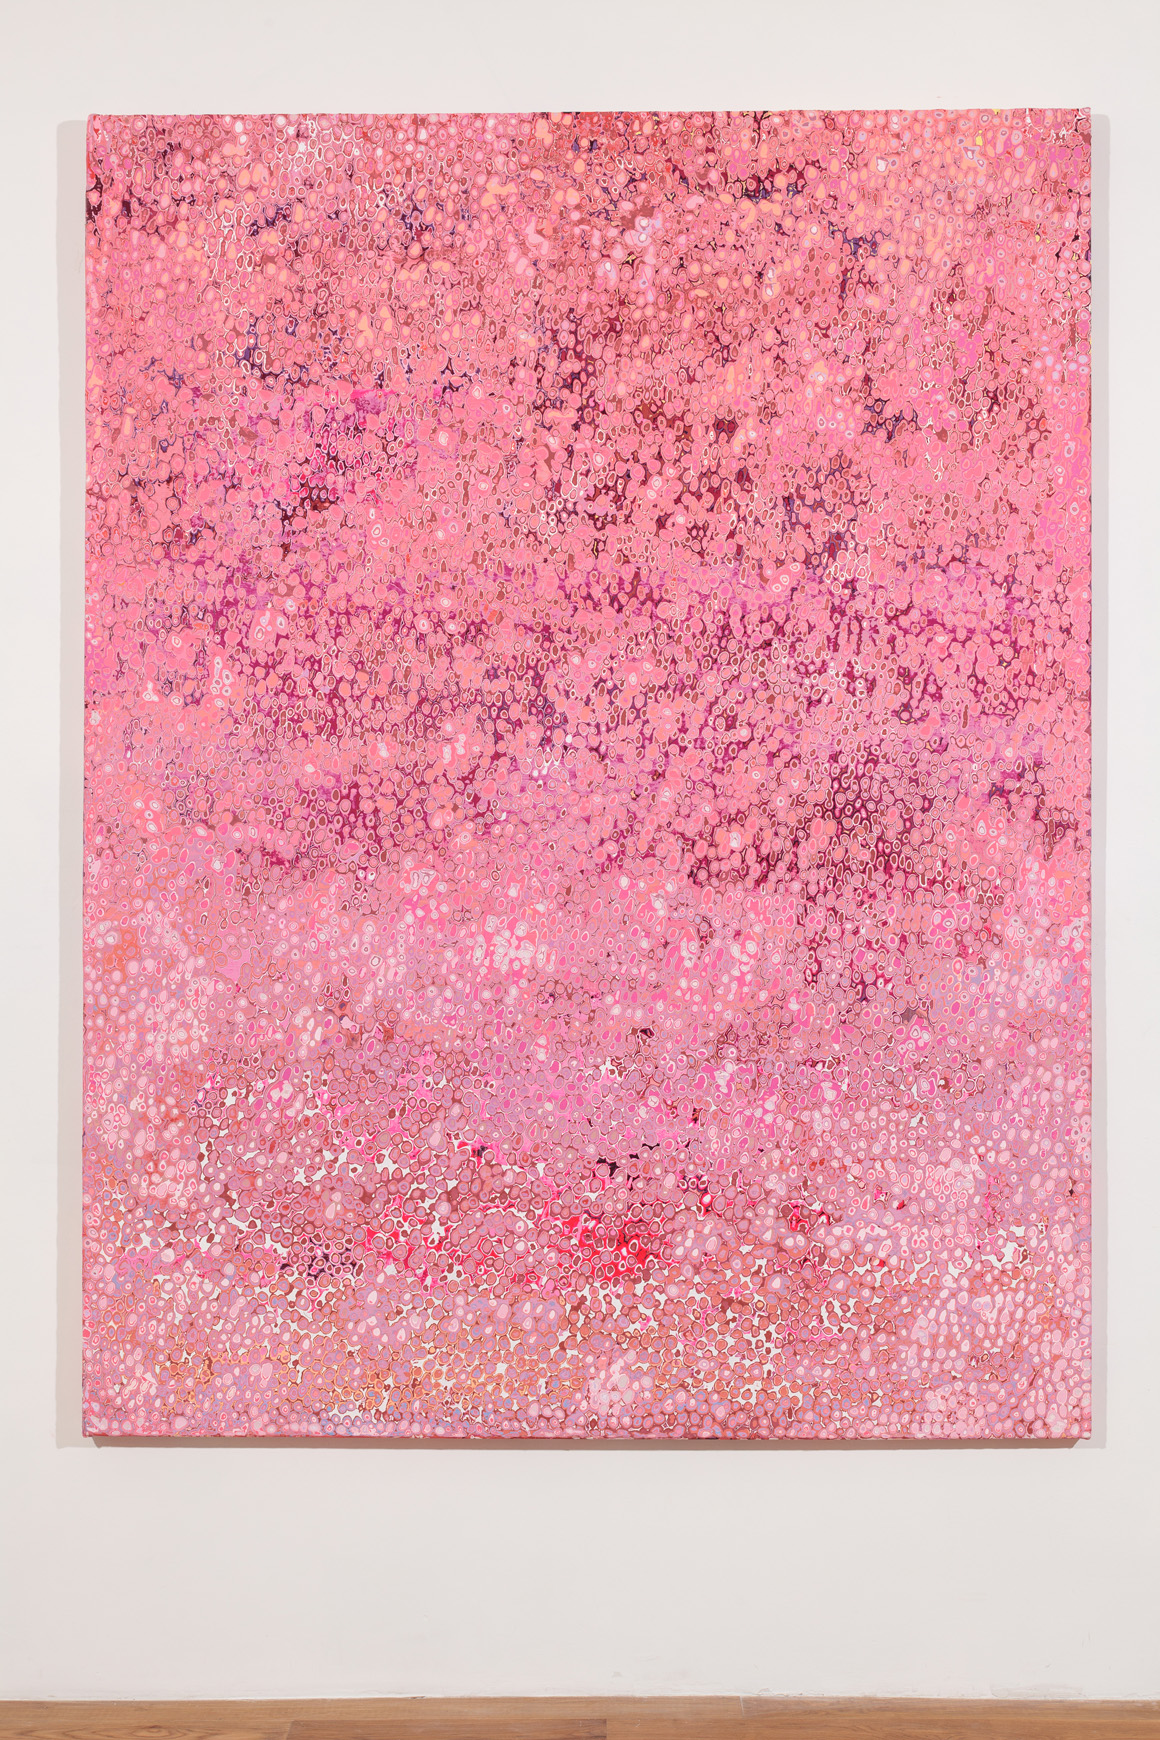 """<p><span class=""""name"""">Andrew Jensdotter</span><br><em>Millennial Pink</em><span class='media'>Latex on canvas</span>83.4 x 63.3 in (211.8 x 160.7 cm)<br>2017<br></p>"""